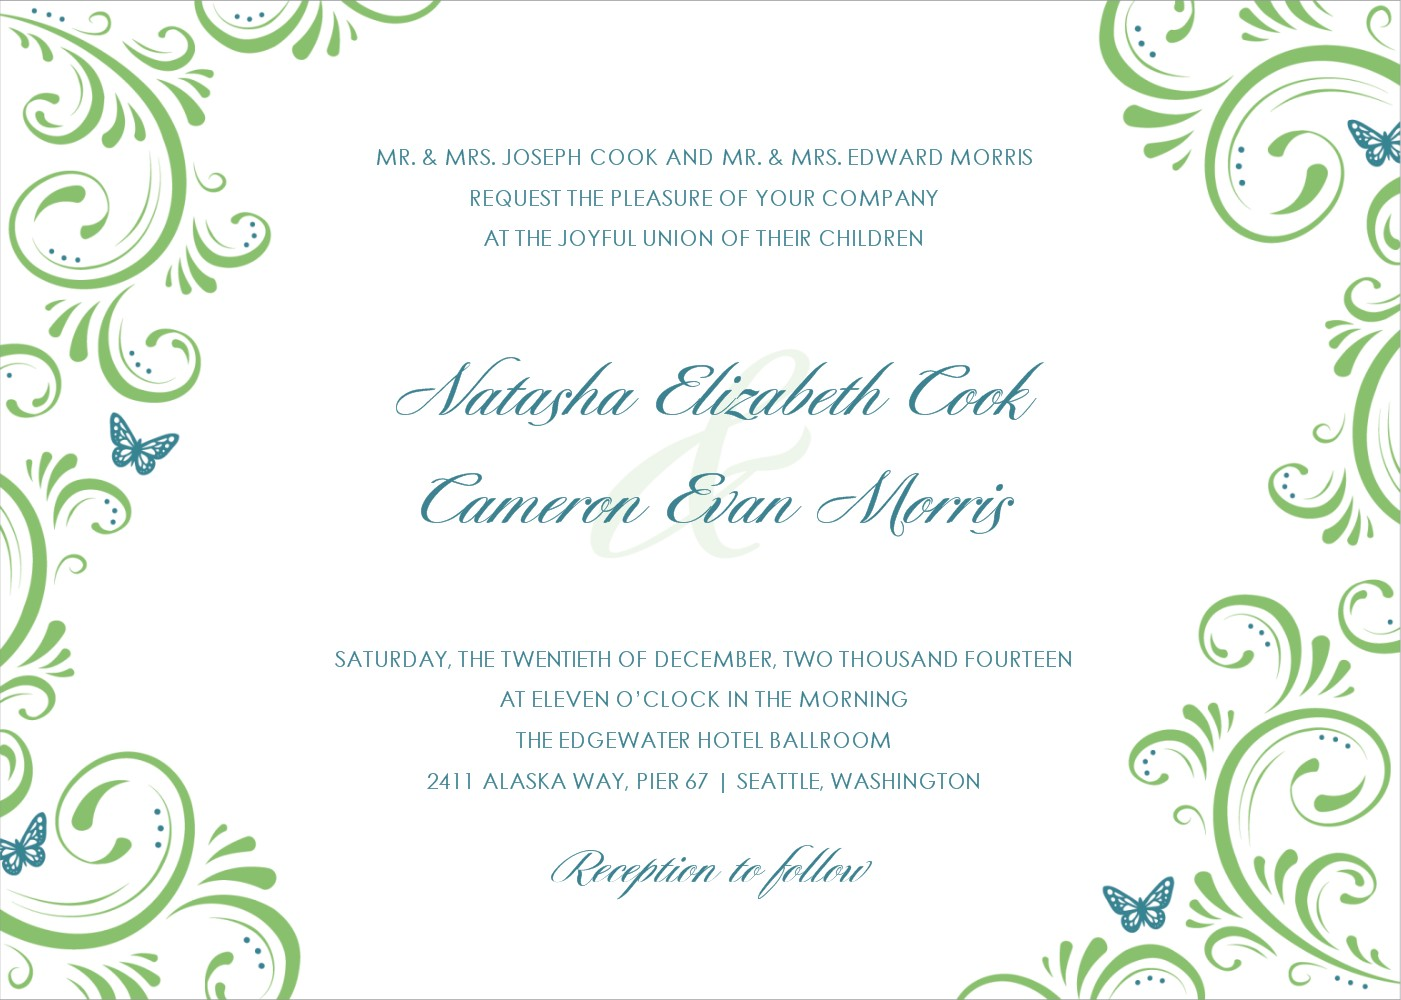 15 printable wedding invitation templates cards samples wedding invitation templates wedding invitations cards invitation cards printable wedding invitation wedding stopboris Gallery